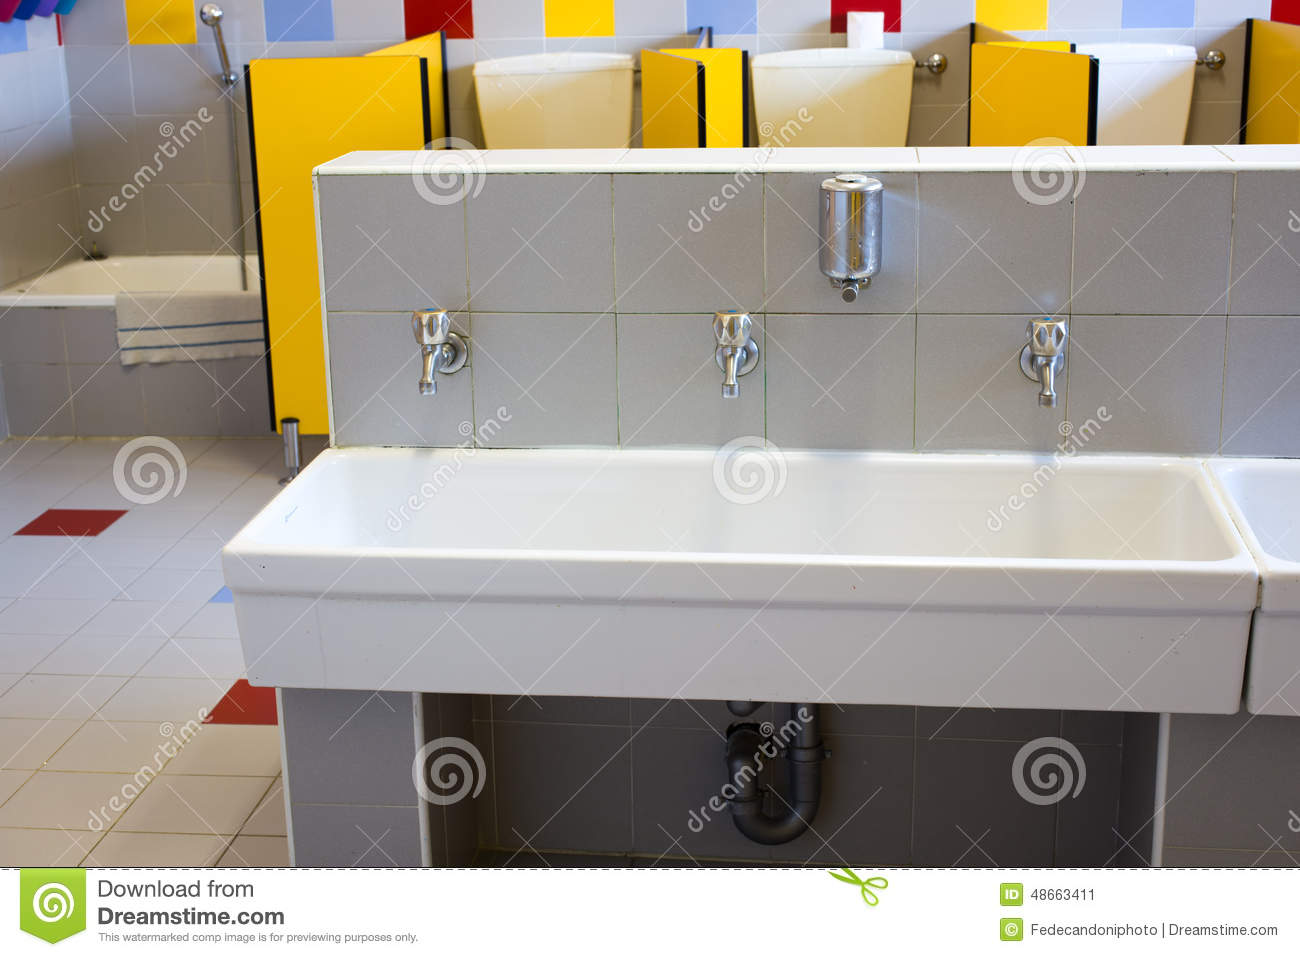 School Bathroom Sinks : Bathrooms Of A School For Children With Low Ceramic Sinks Stock Photo ...